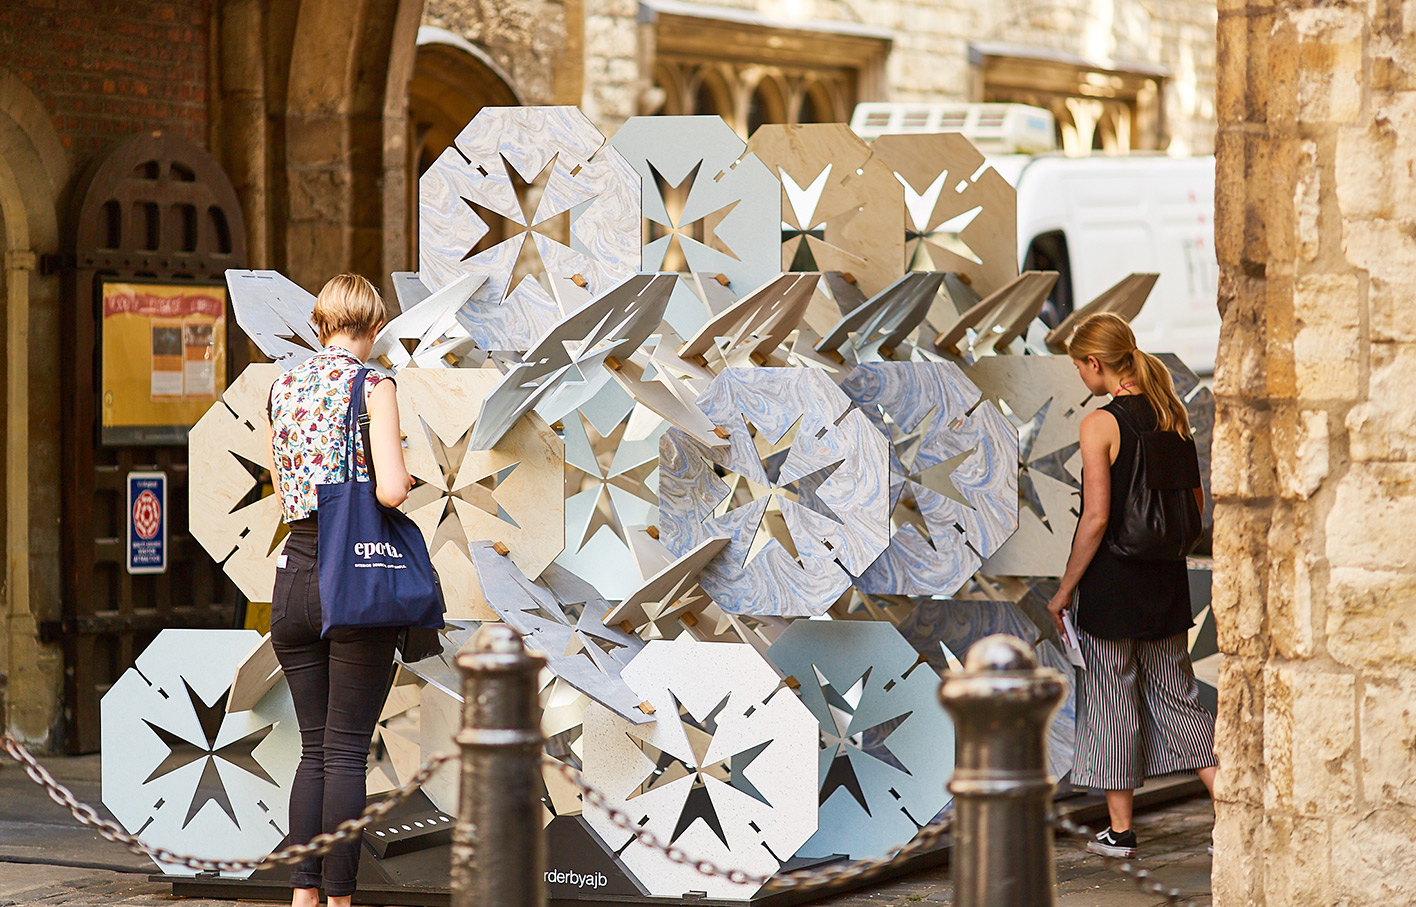 Order by Aldworth James & Bond | Clerkenwell Design Week | Visitors at St John's Gate